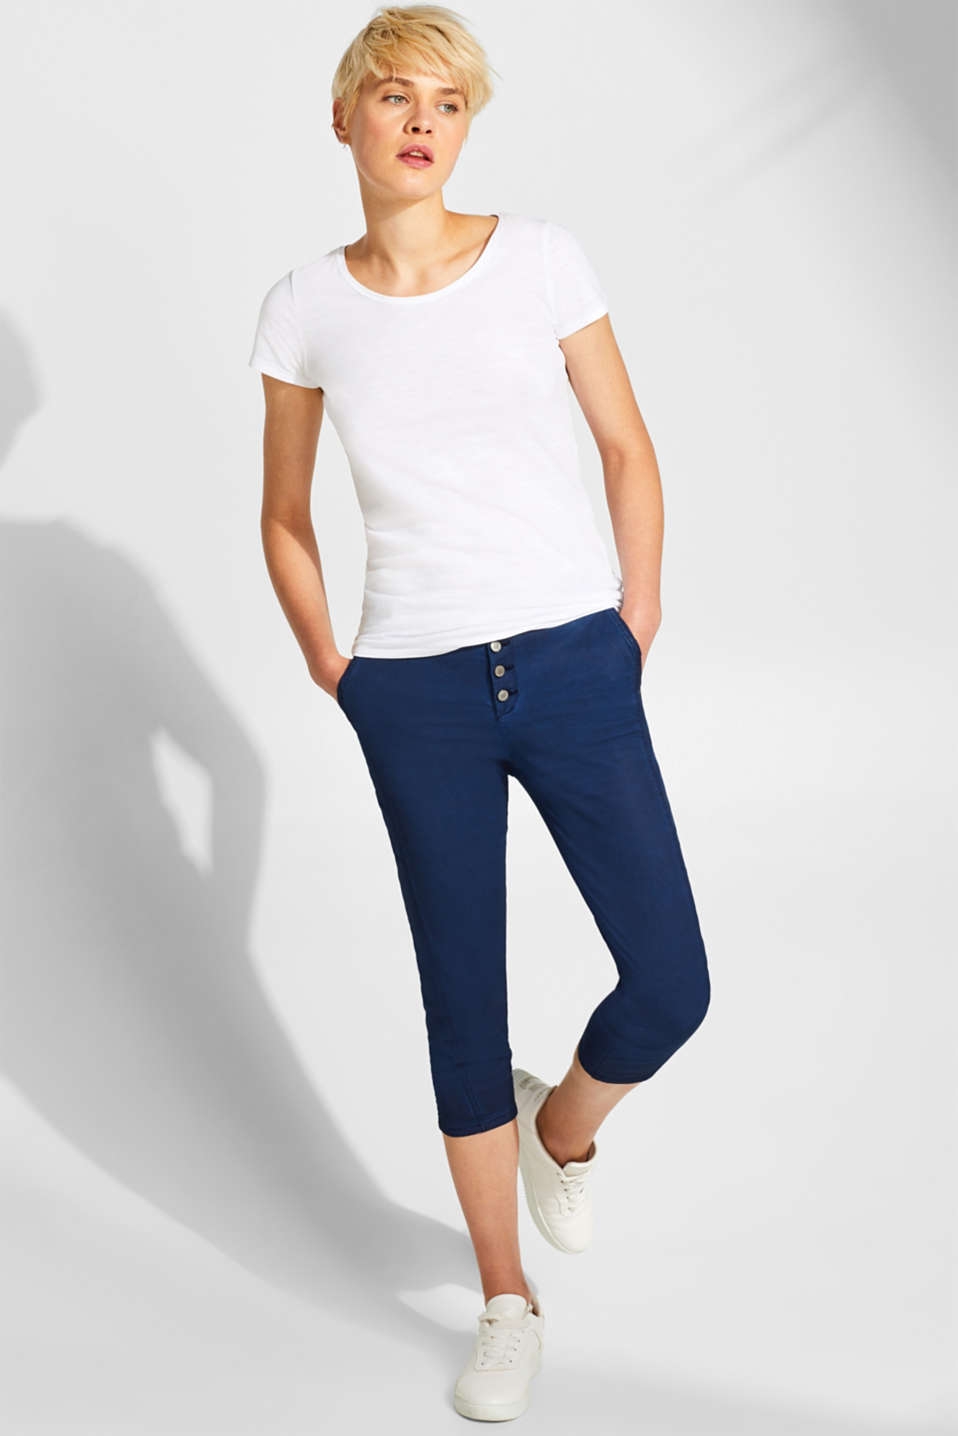 edc - SUMMER CAPRIS in a washed look with button packet